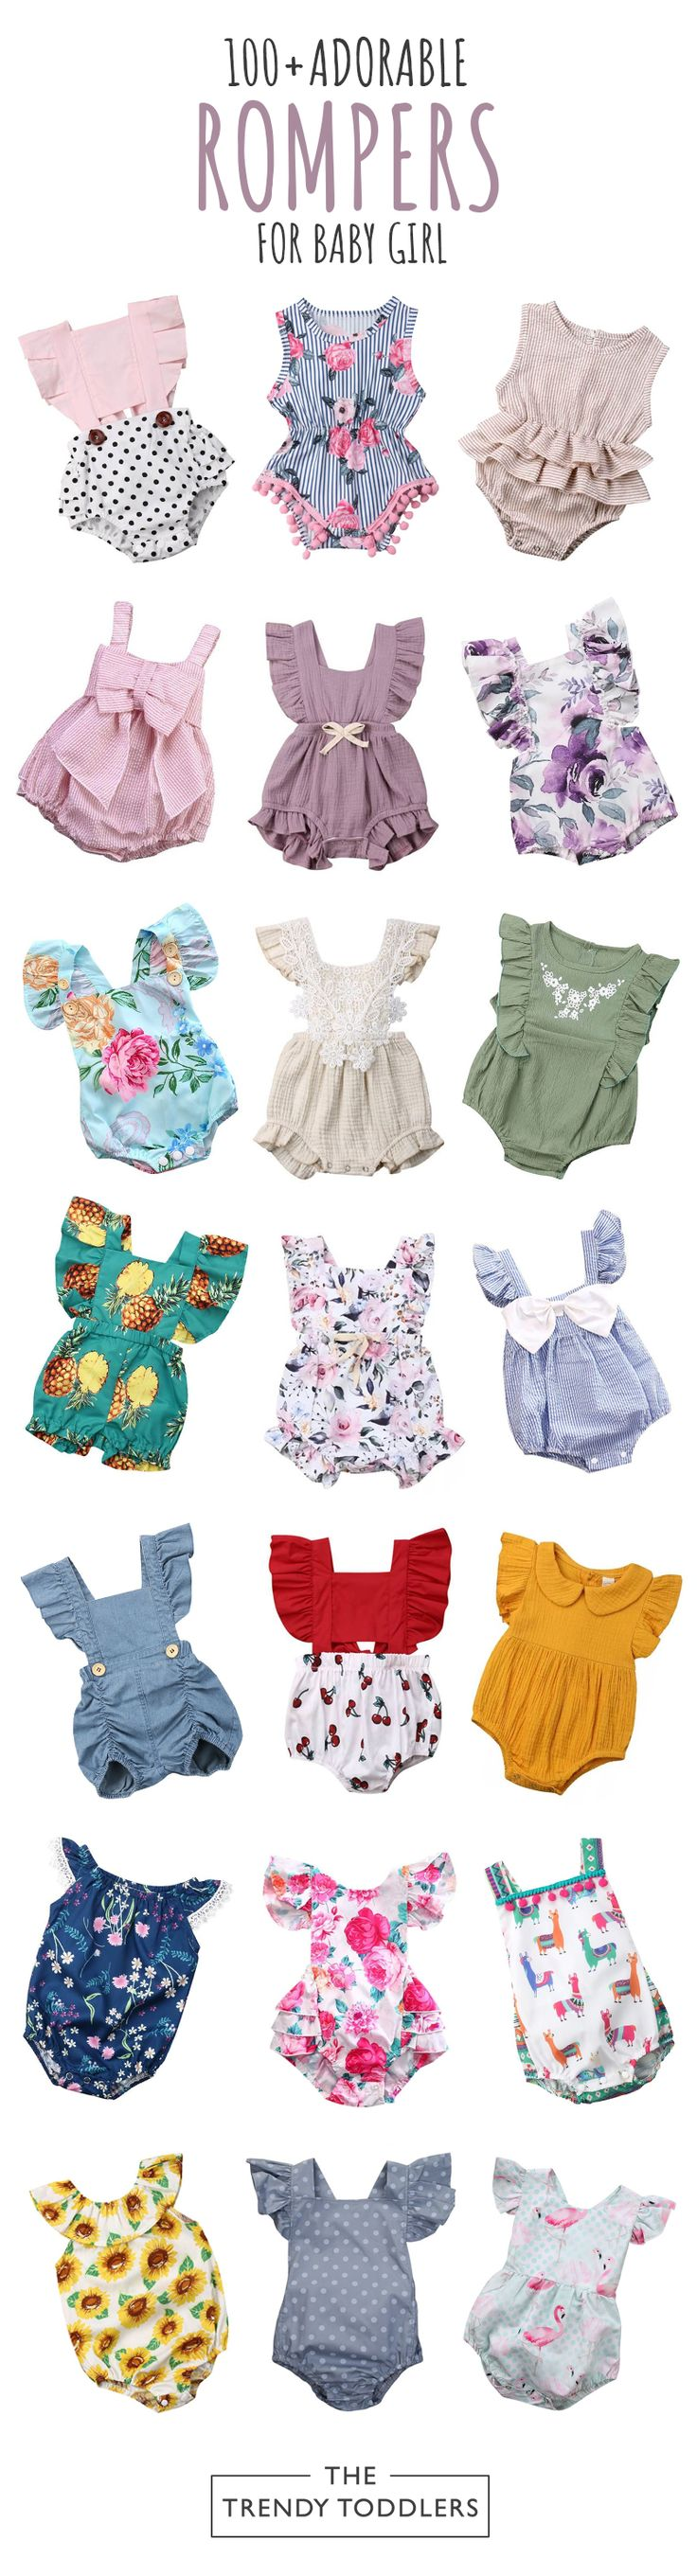 UP TO 70% OFF + FREE SHIPPING! Shop our entire collection of baby girl rompers a... 1